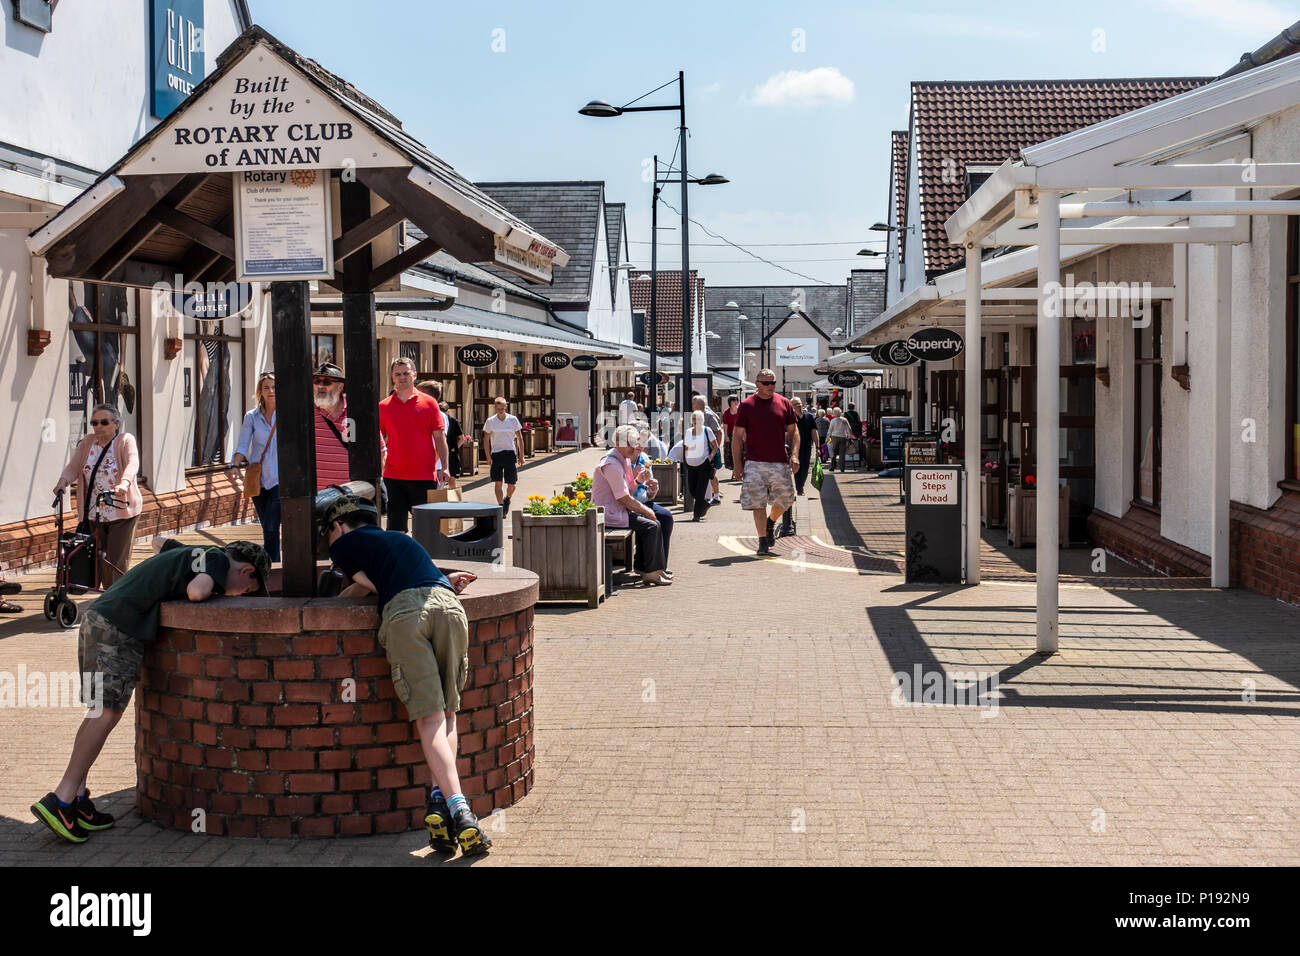 Shoppers enjoying a sunny day browsing the shops of Gretna Gateway Outlet Village, a 'strip mall' in the very south of Scotland. - Stock Image